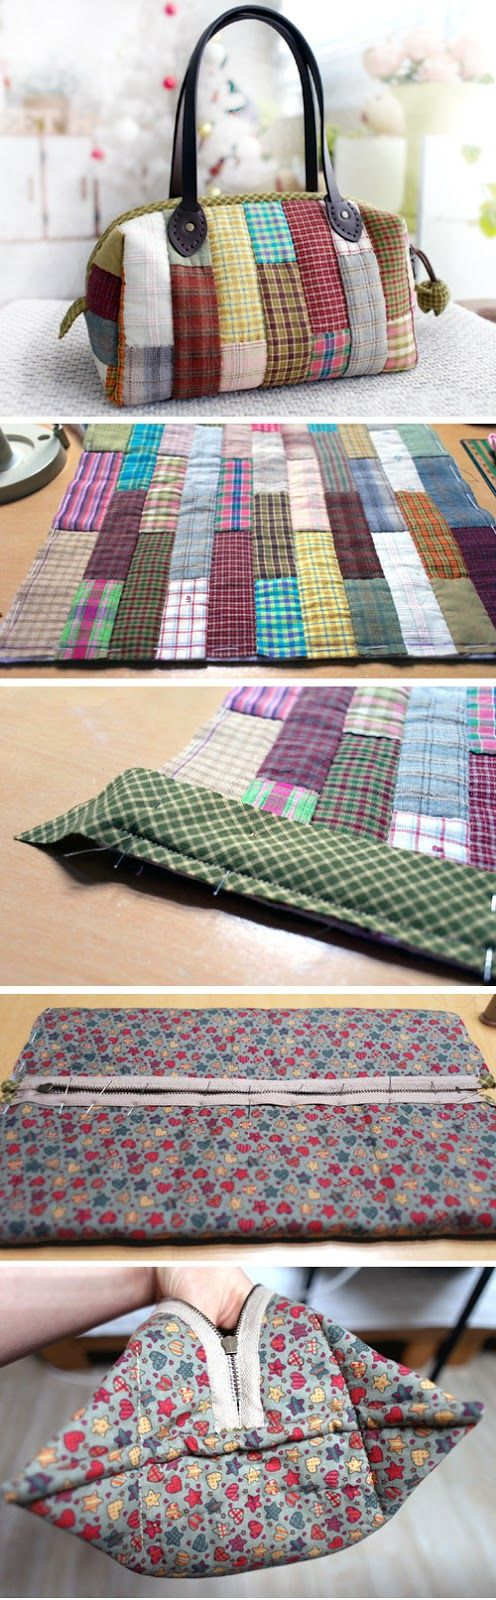 Patchwork Boston Bag. Photo Sewing Tutorial. Step by step DIY.  http://www.handmadiya.com/2016/01/boston-bag-patchwork-tutorial.html